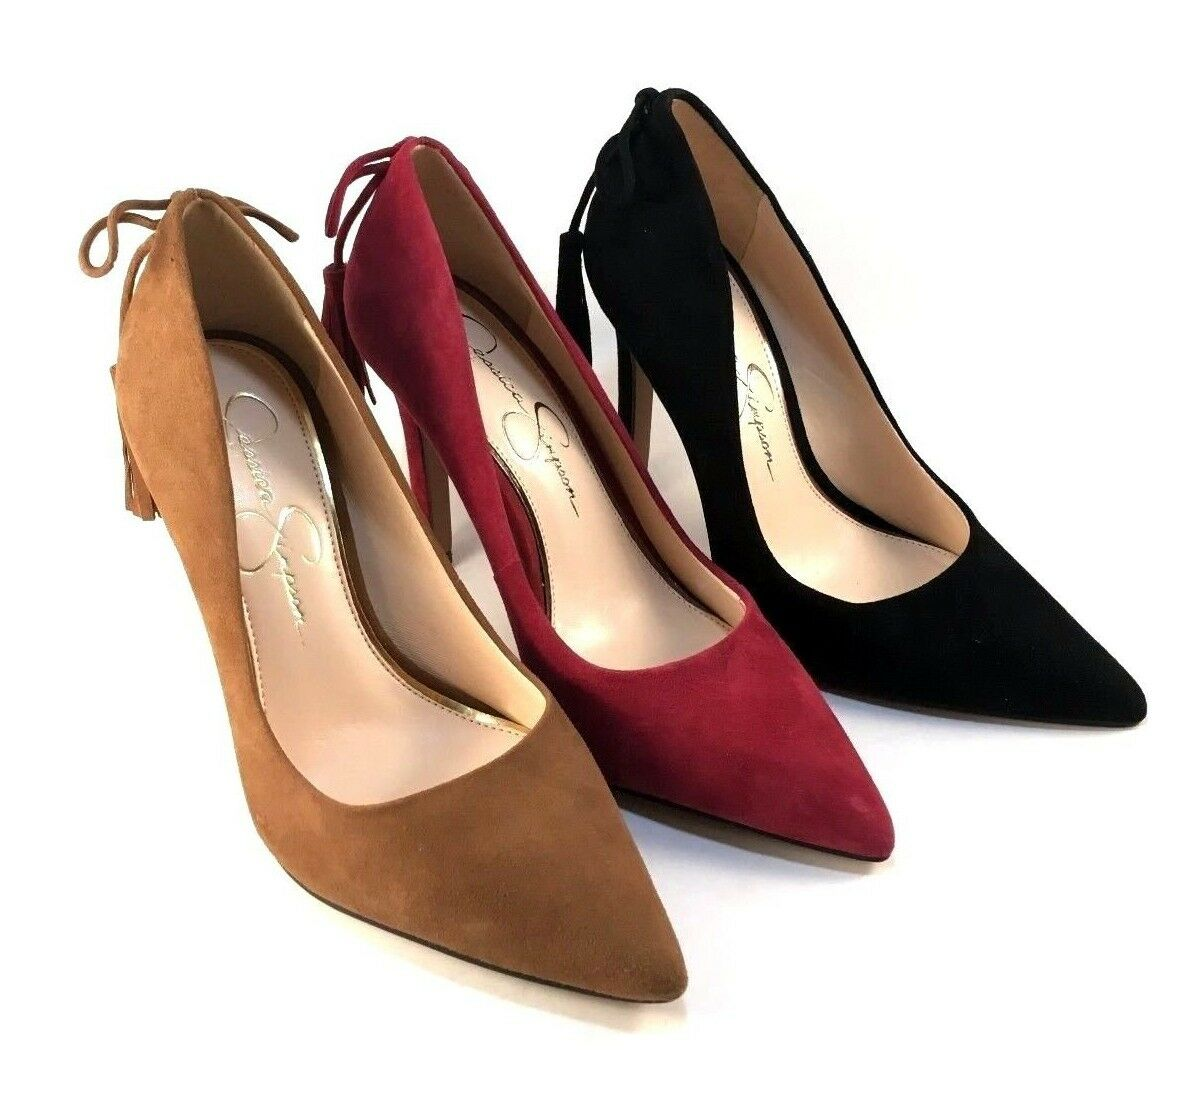 Jessica Simpson Centella Suede Leather Pointy Dress Pumps - Choose Sz color